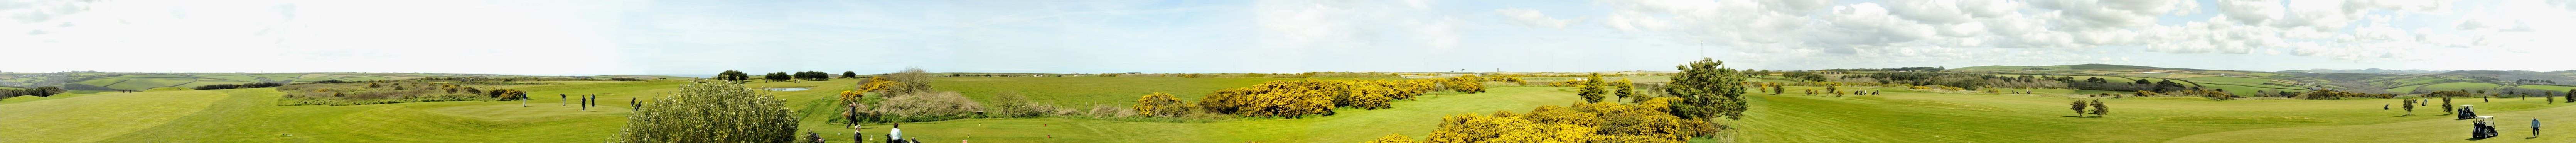 Panoramic view of Merlin Golf Course